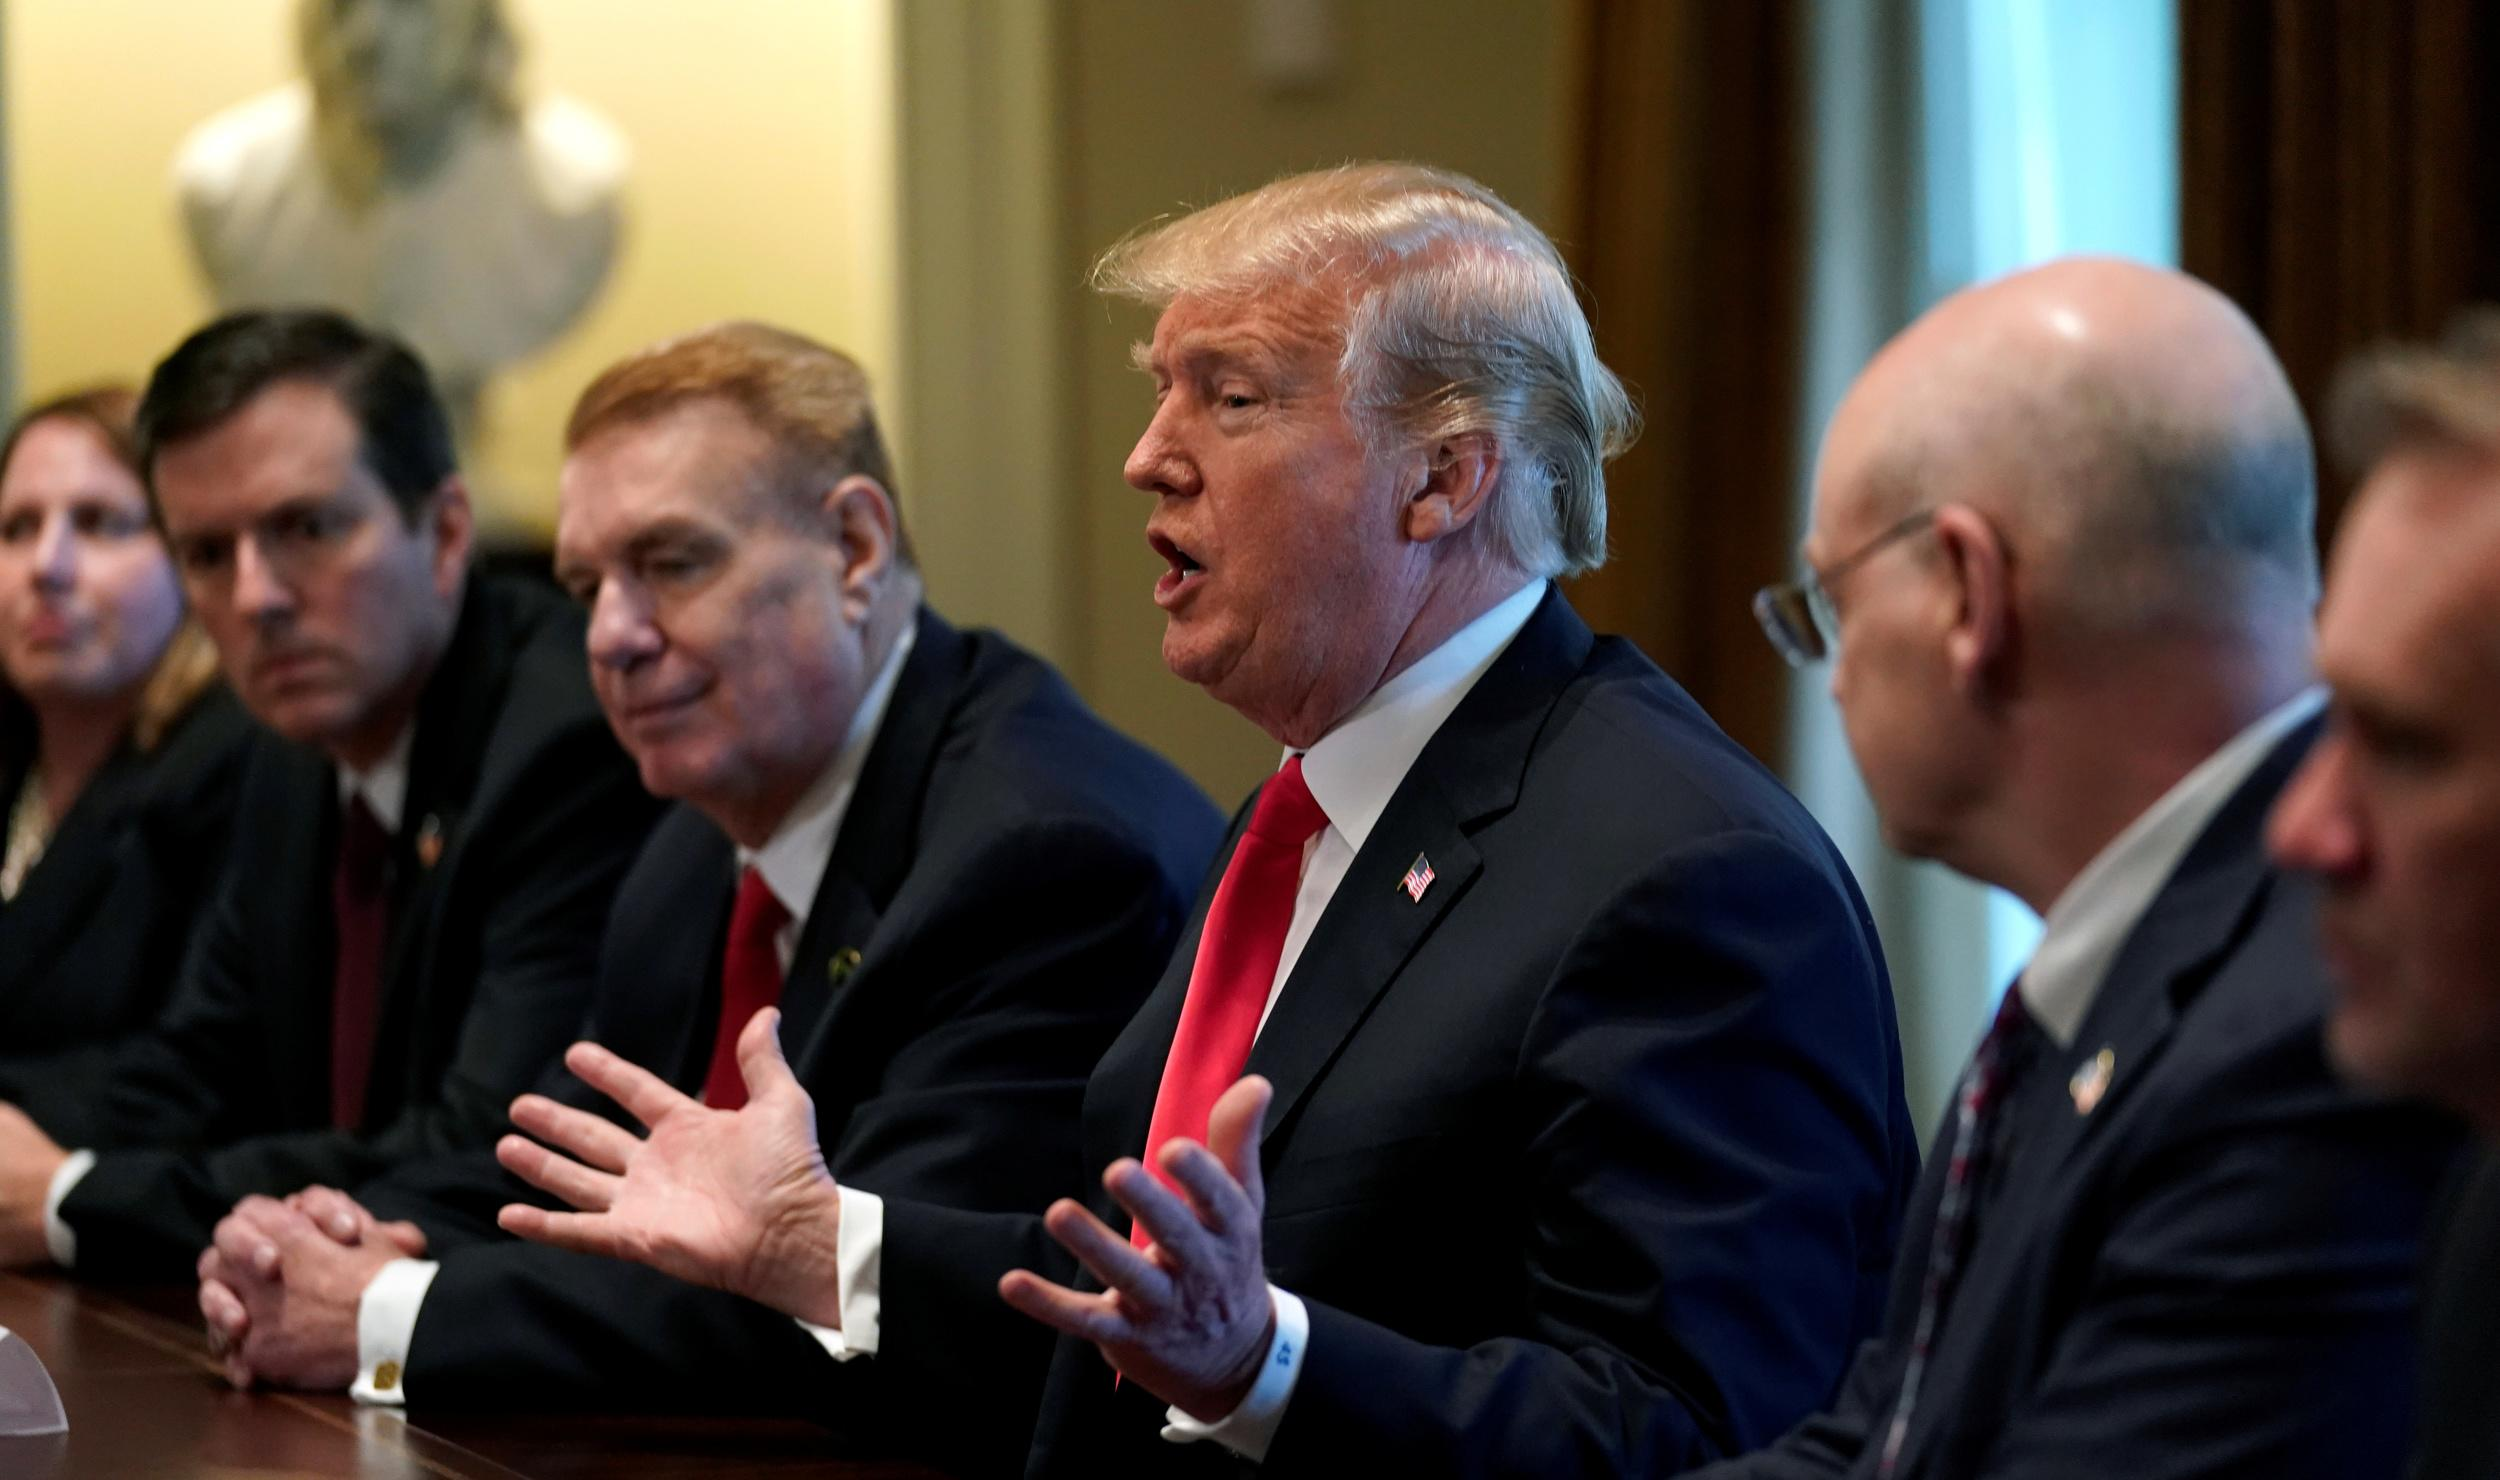 U.S. President Donald Trump announces that the United States will impose tariffs of 25 percent on steel imports and 10 percent on imported aluminum during a meeting at the White House in Washington, U.S., March 1, 2018. REUTERS/Kevin Lamarque